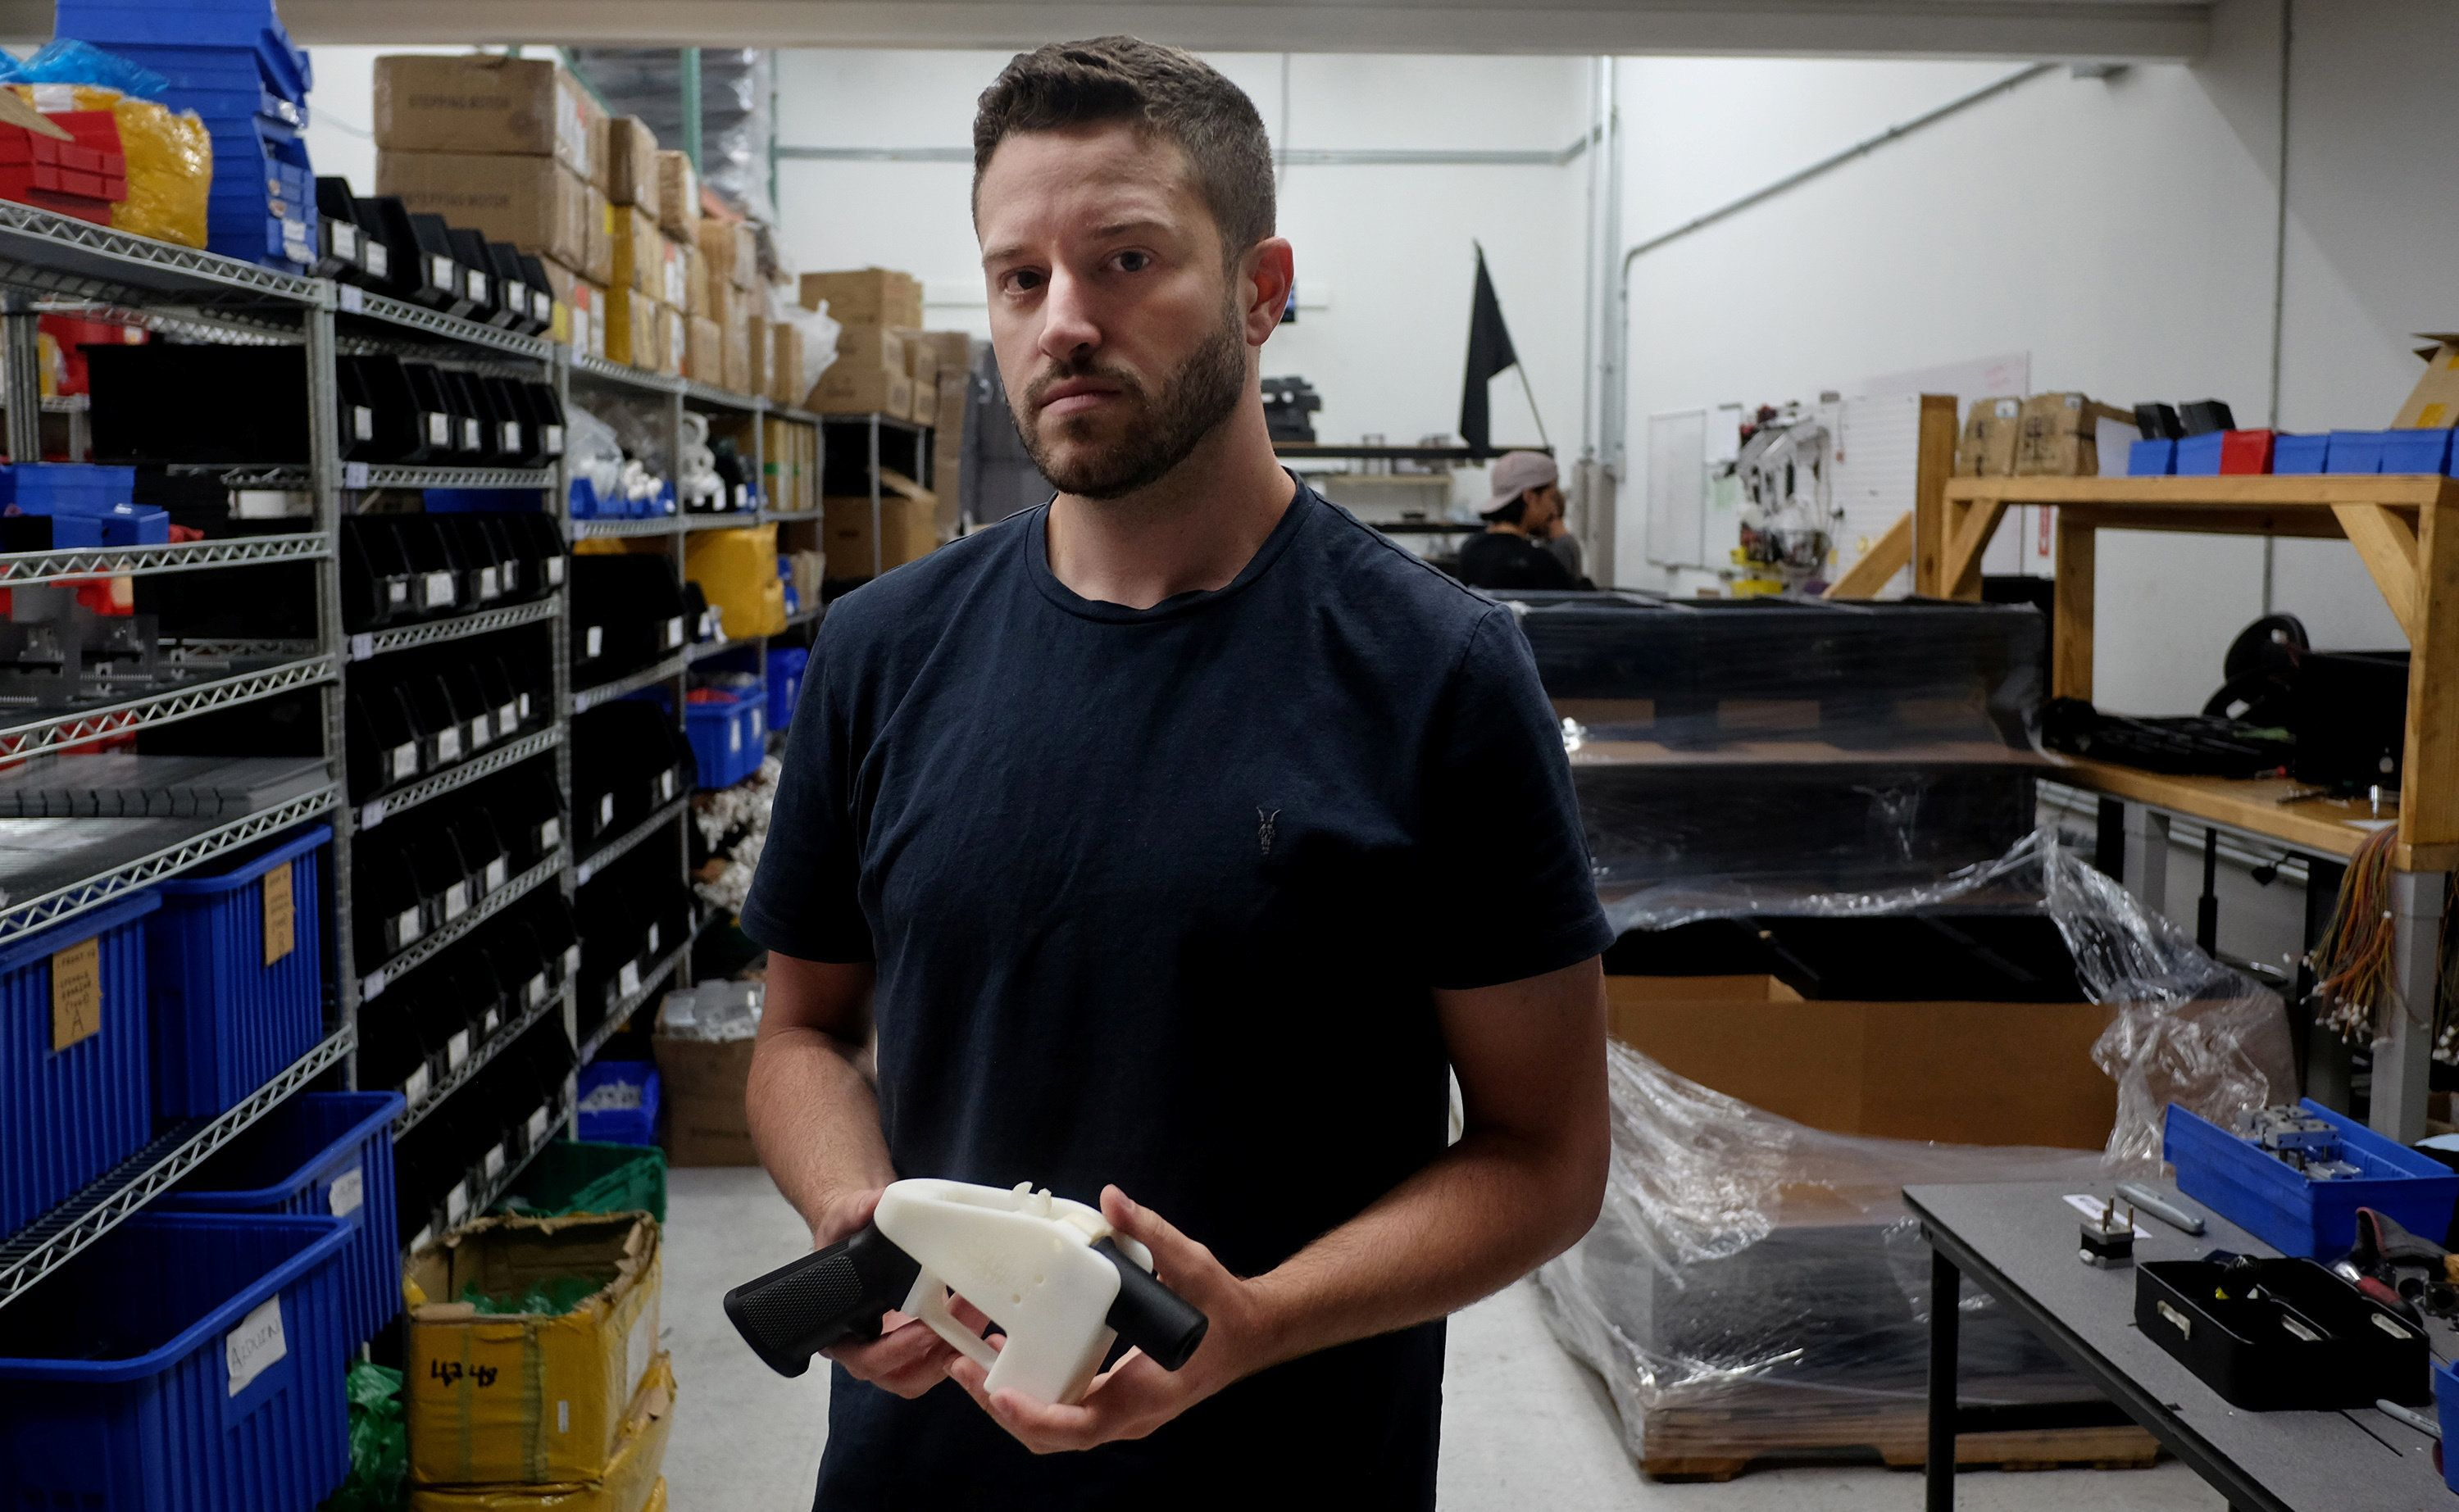 """Cody Wilson poses with an example of a 3-D printed gun, called the """"Liberator,"""" which his company Defense Distributed designs at his factory in Austin, Texas, U.S. August 1, 2018. Picture taken August 1, 2018.   REUTERS/Kelly West"""